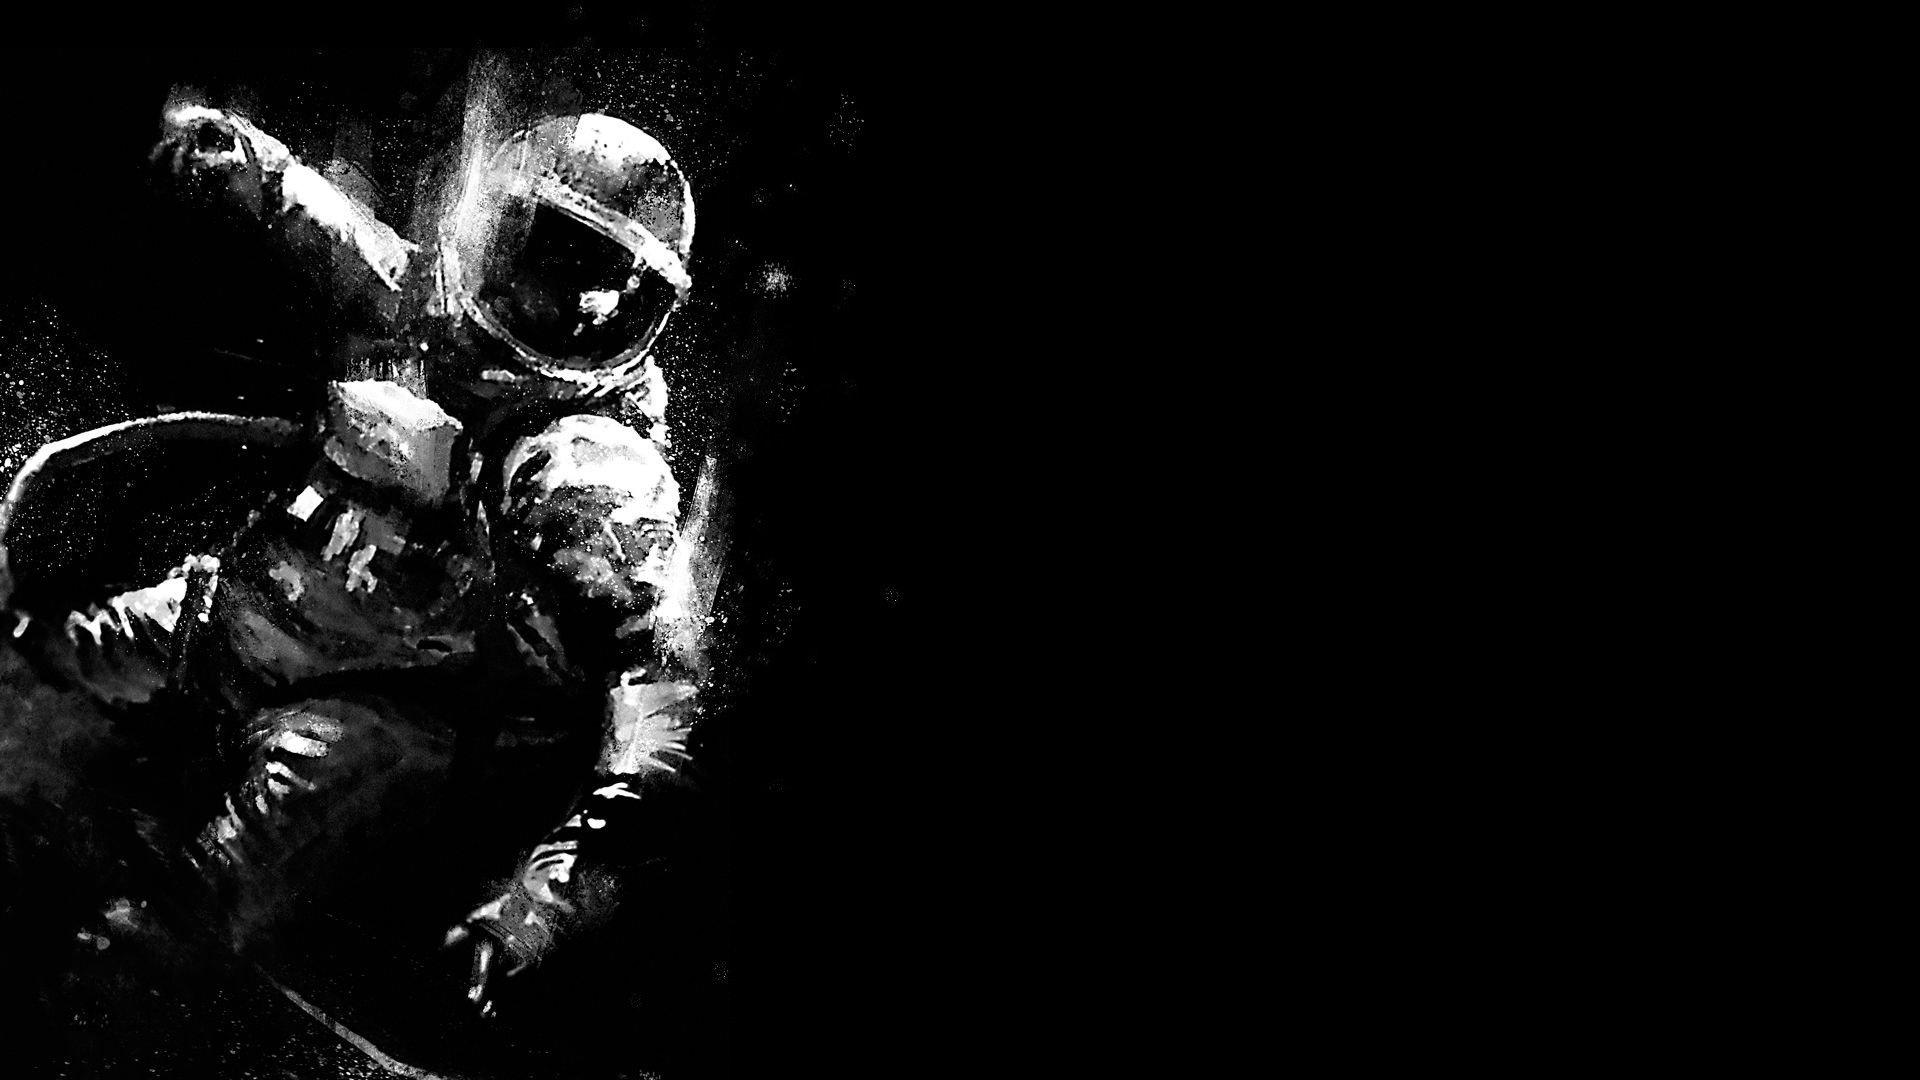 Awesome Astronaut free wallpaper ID:101460 for full hd desktop